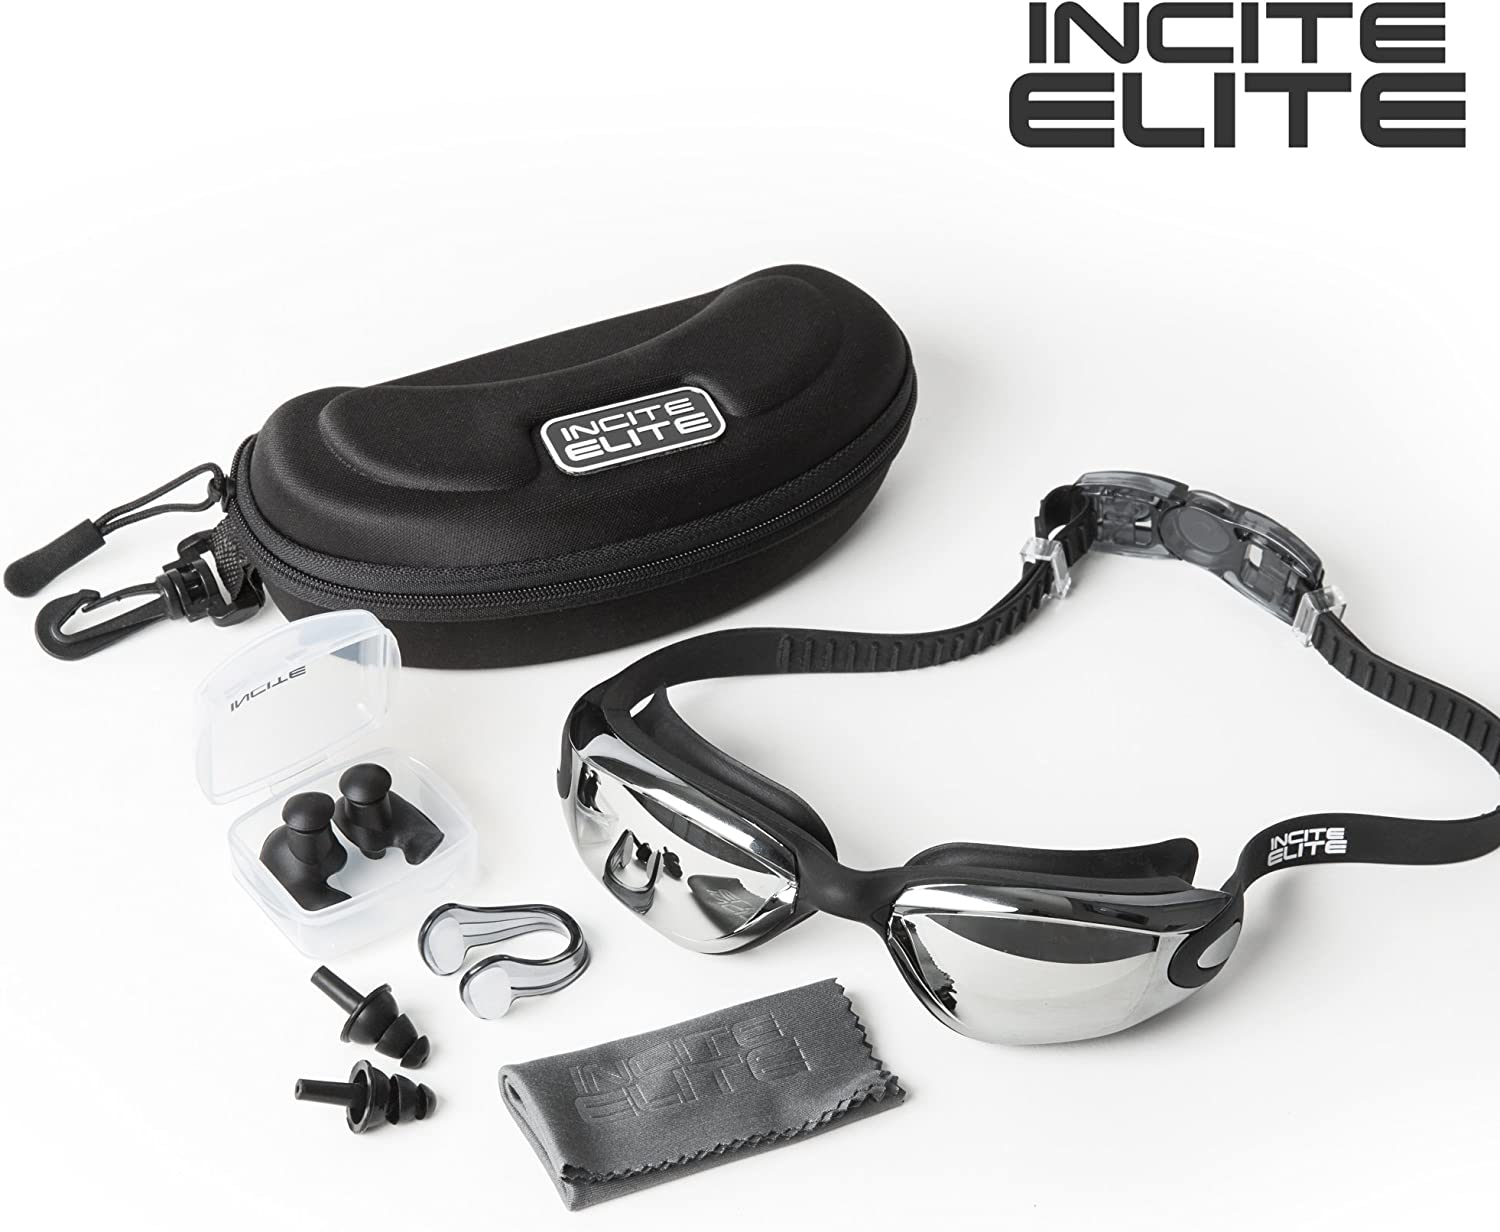 Incite Elite Goggles Kit With Protective Case